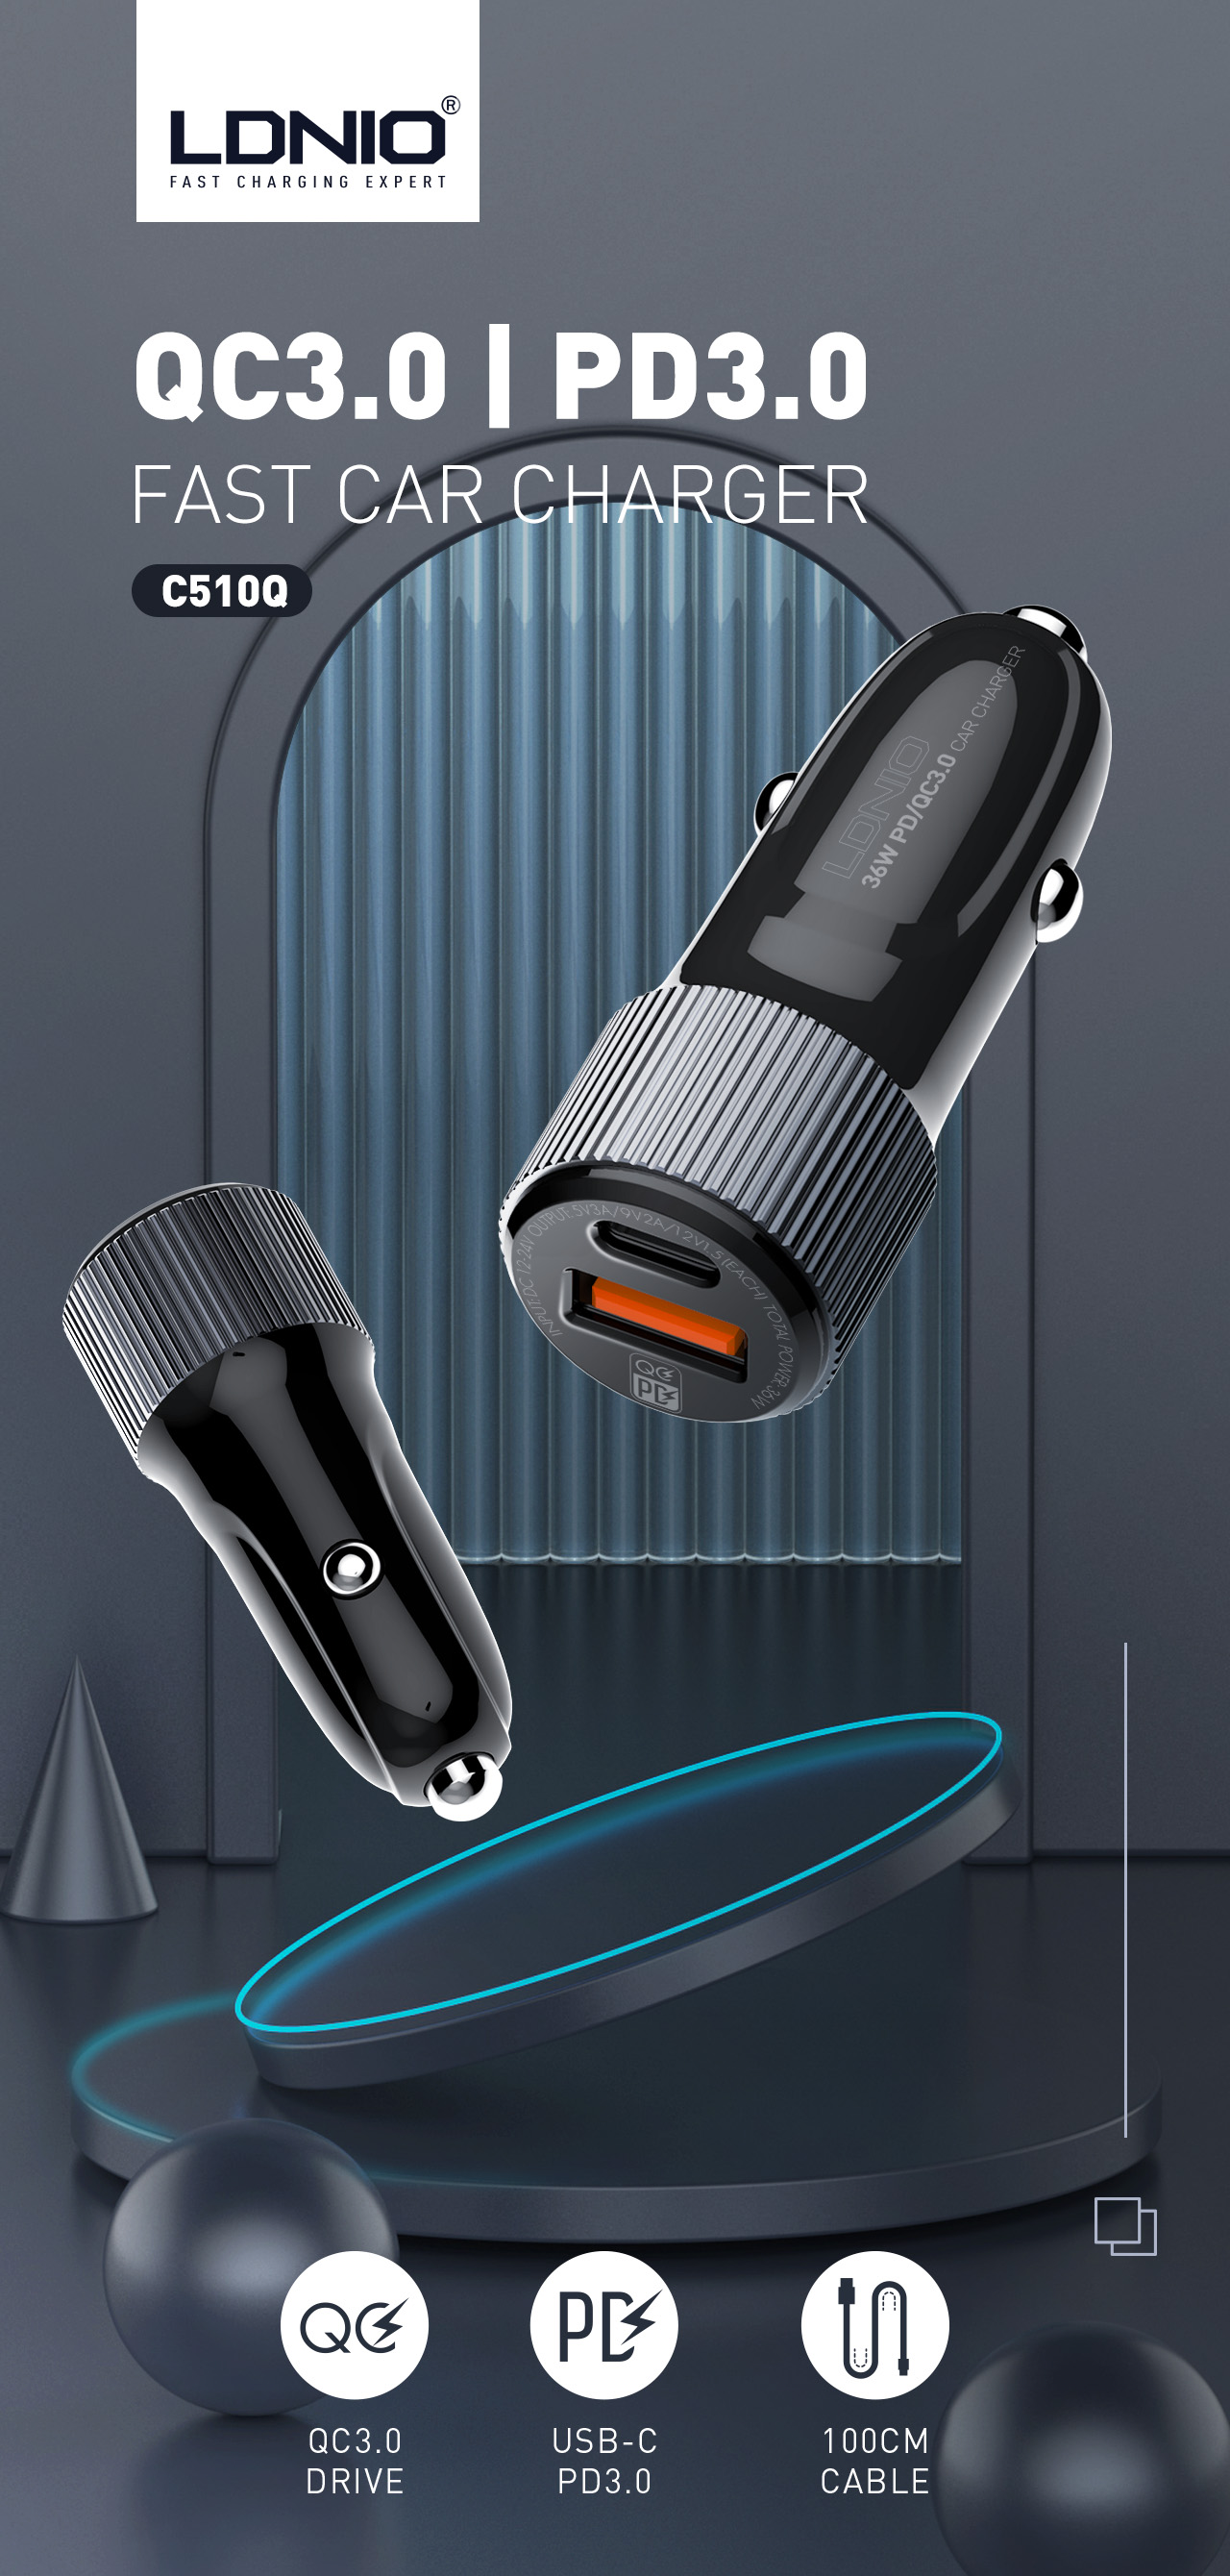 LDNIO New item C510Q 30W QC4.0 + PD in-car charger USB C Charger